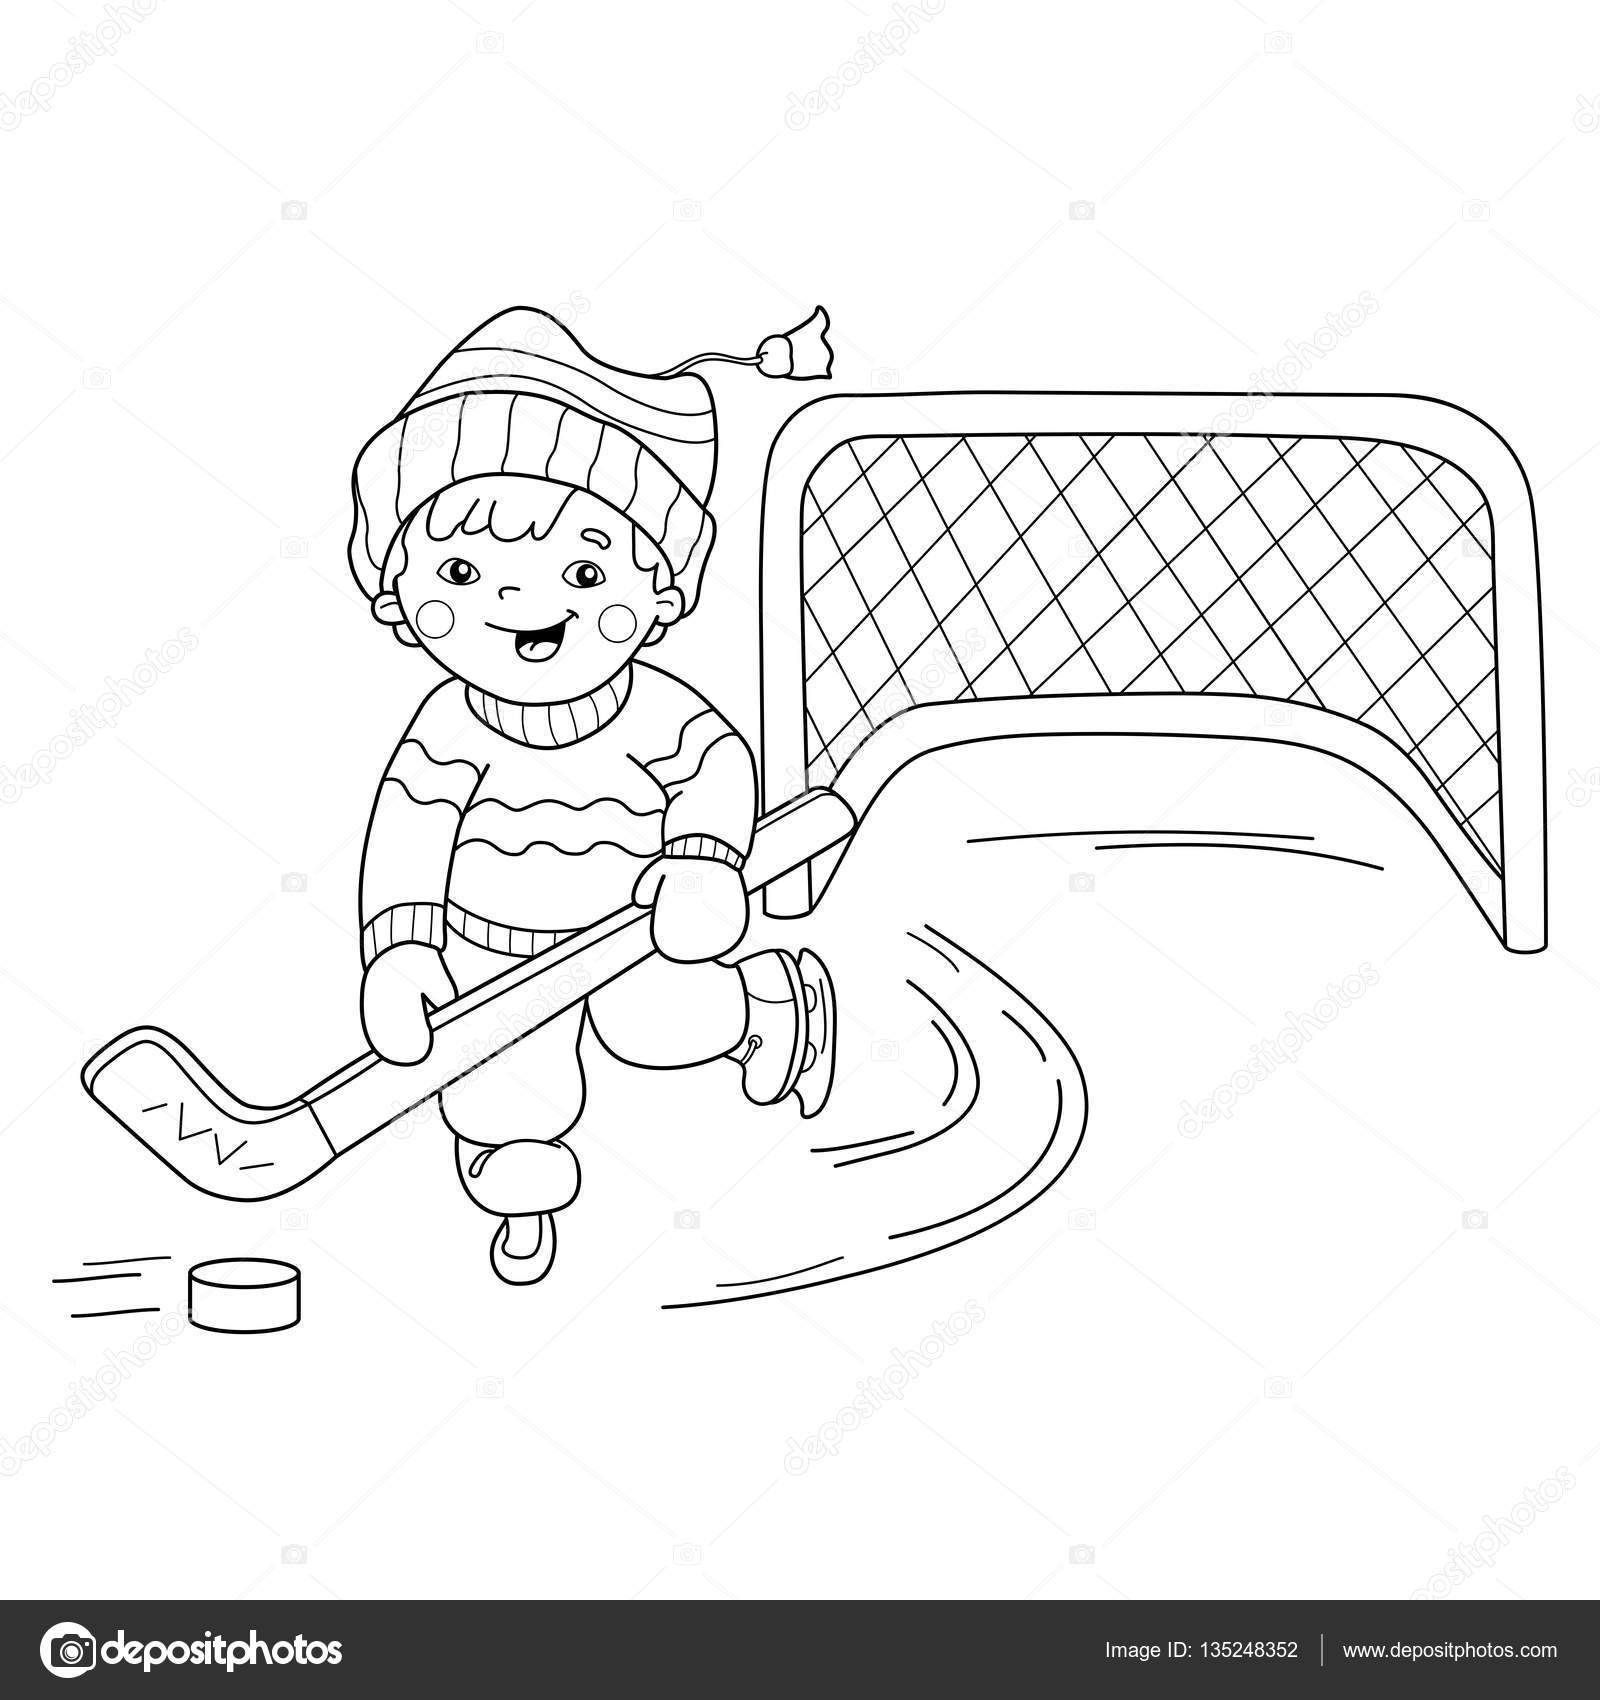 coloring page outline of cartoon boy playing hockey winter sports coloring book for kids stock illustration - Sports Coloring Book